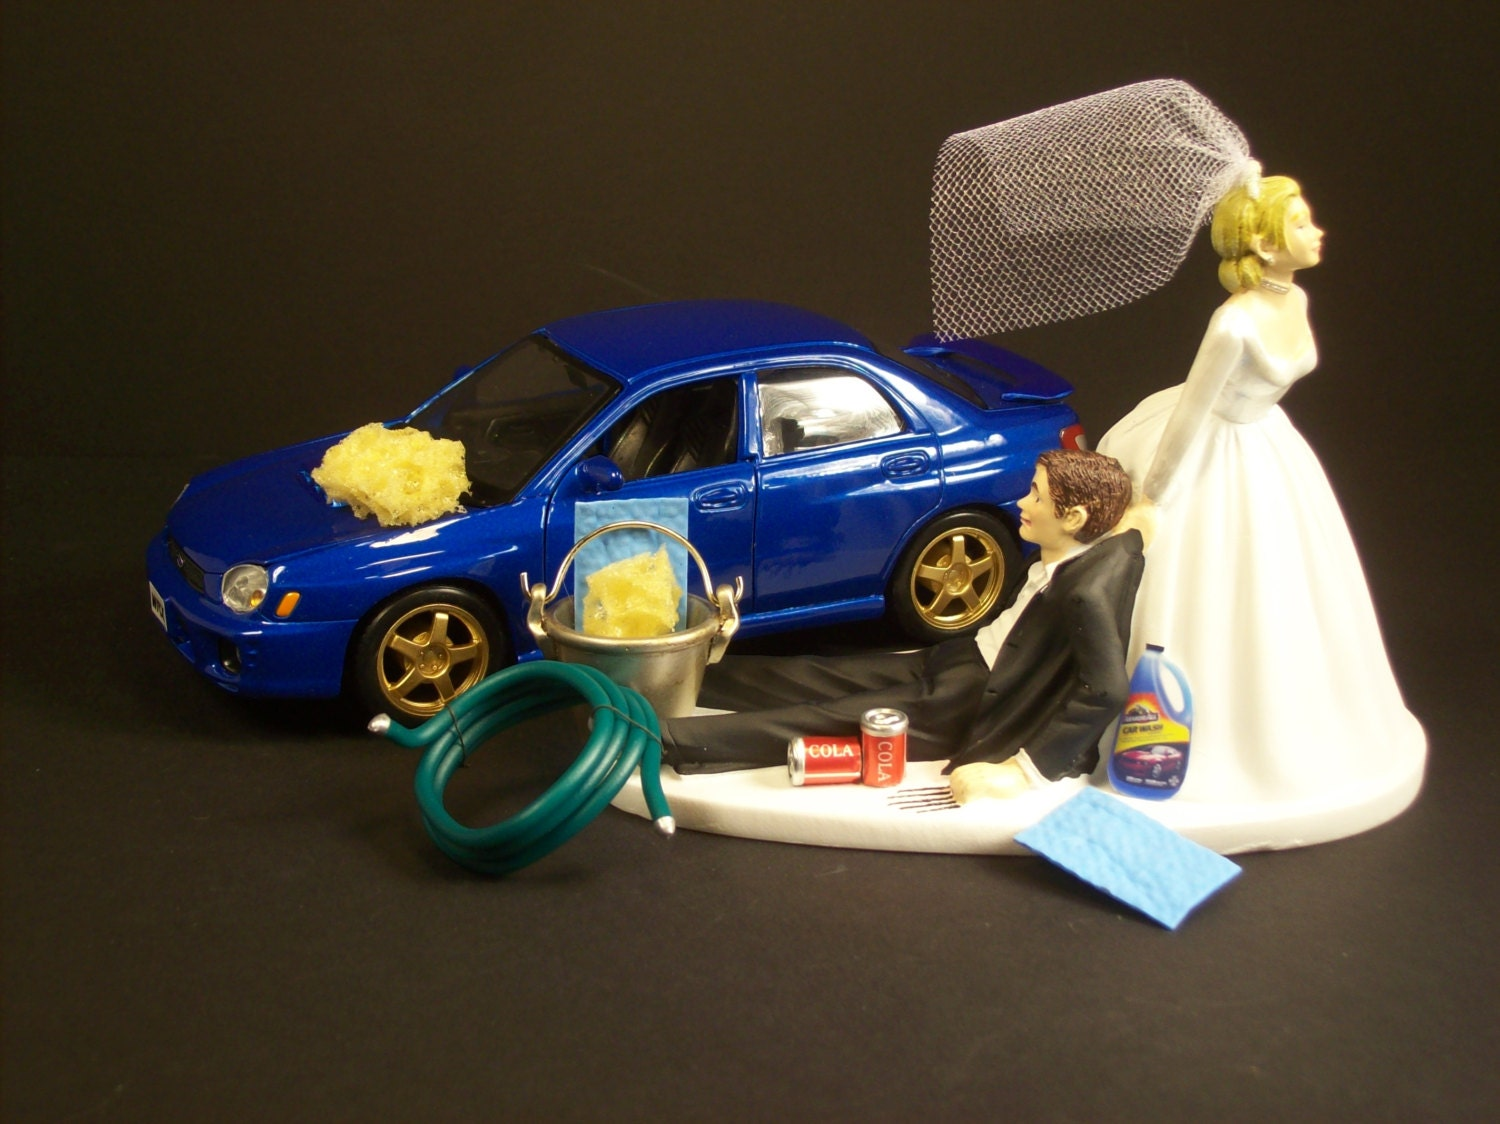 AUTO CAR Wash 2006 Subaru Impreza STI Wrx Blue Bride and Groom